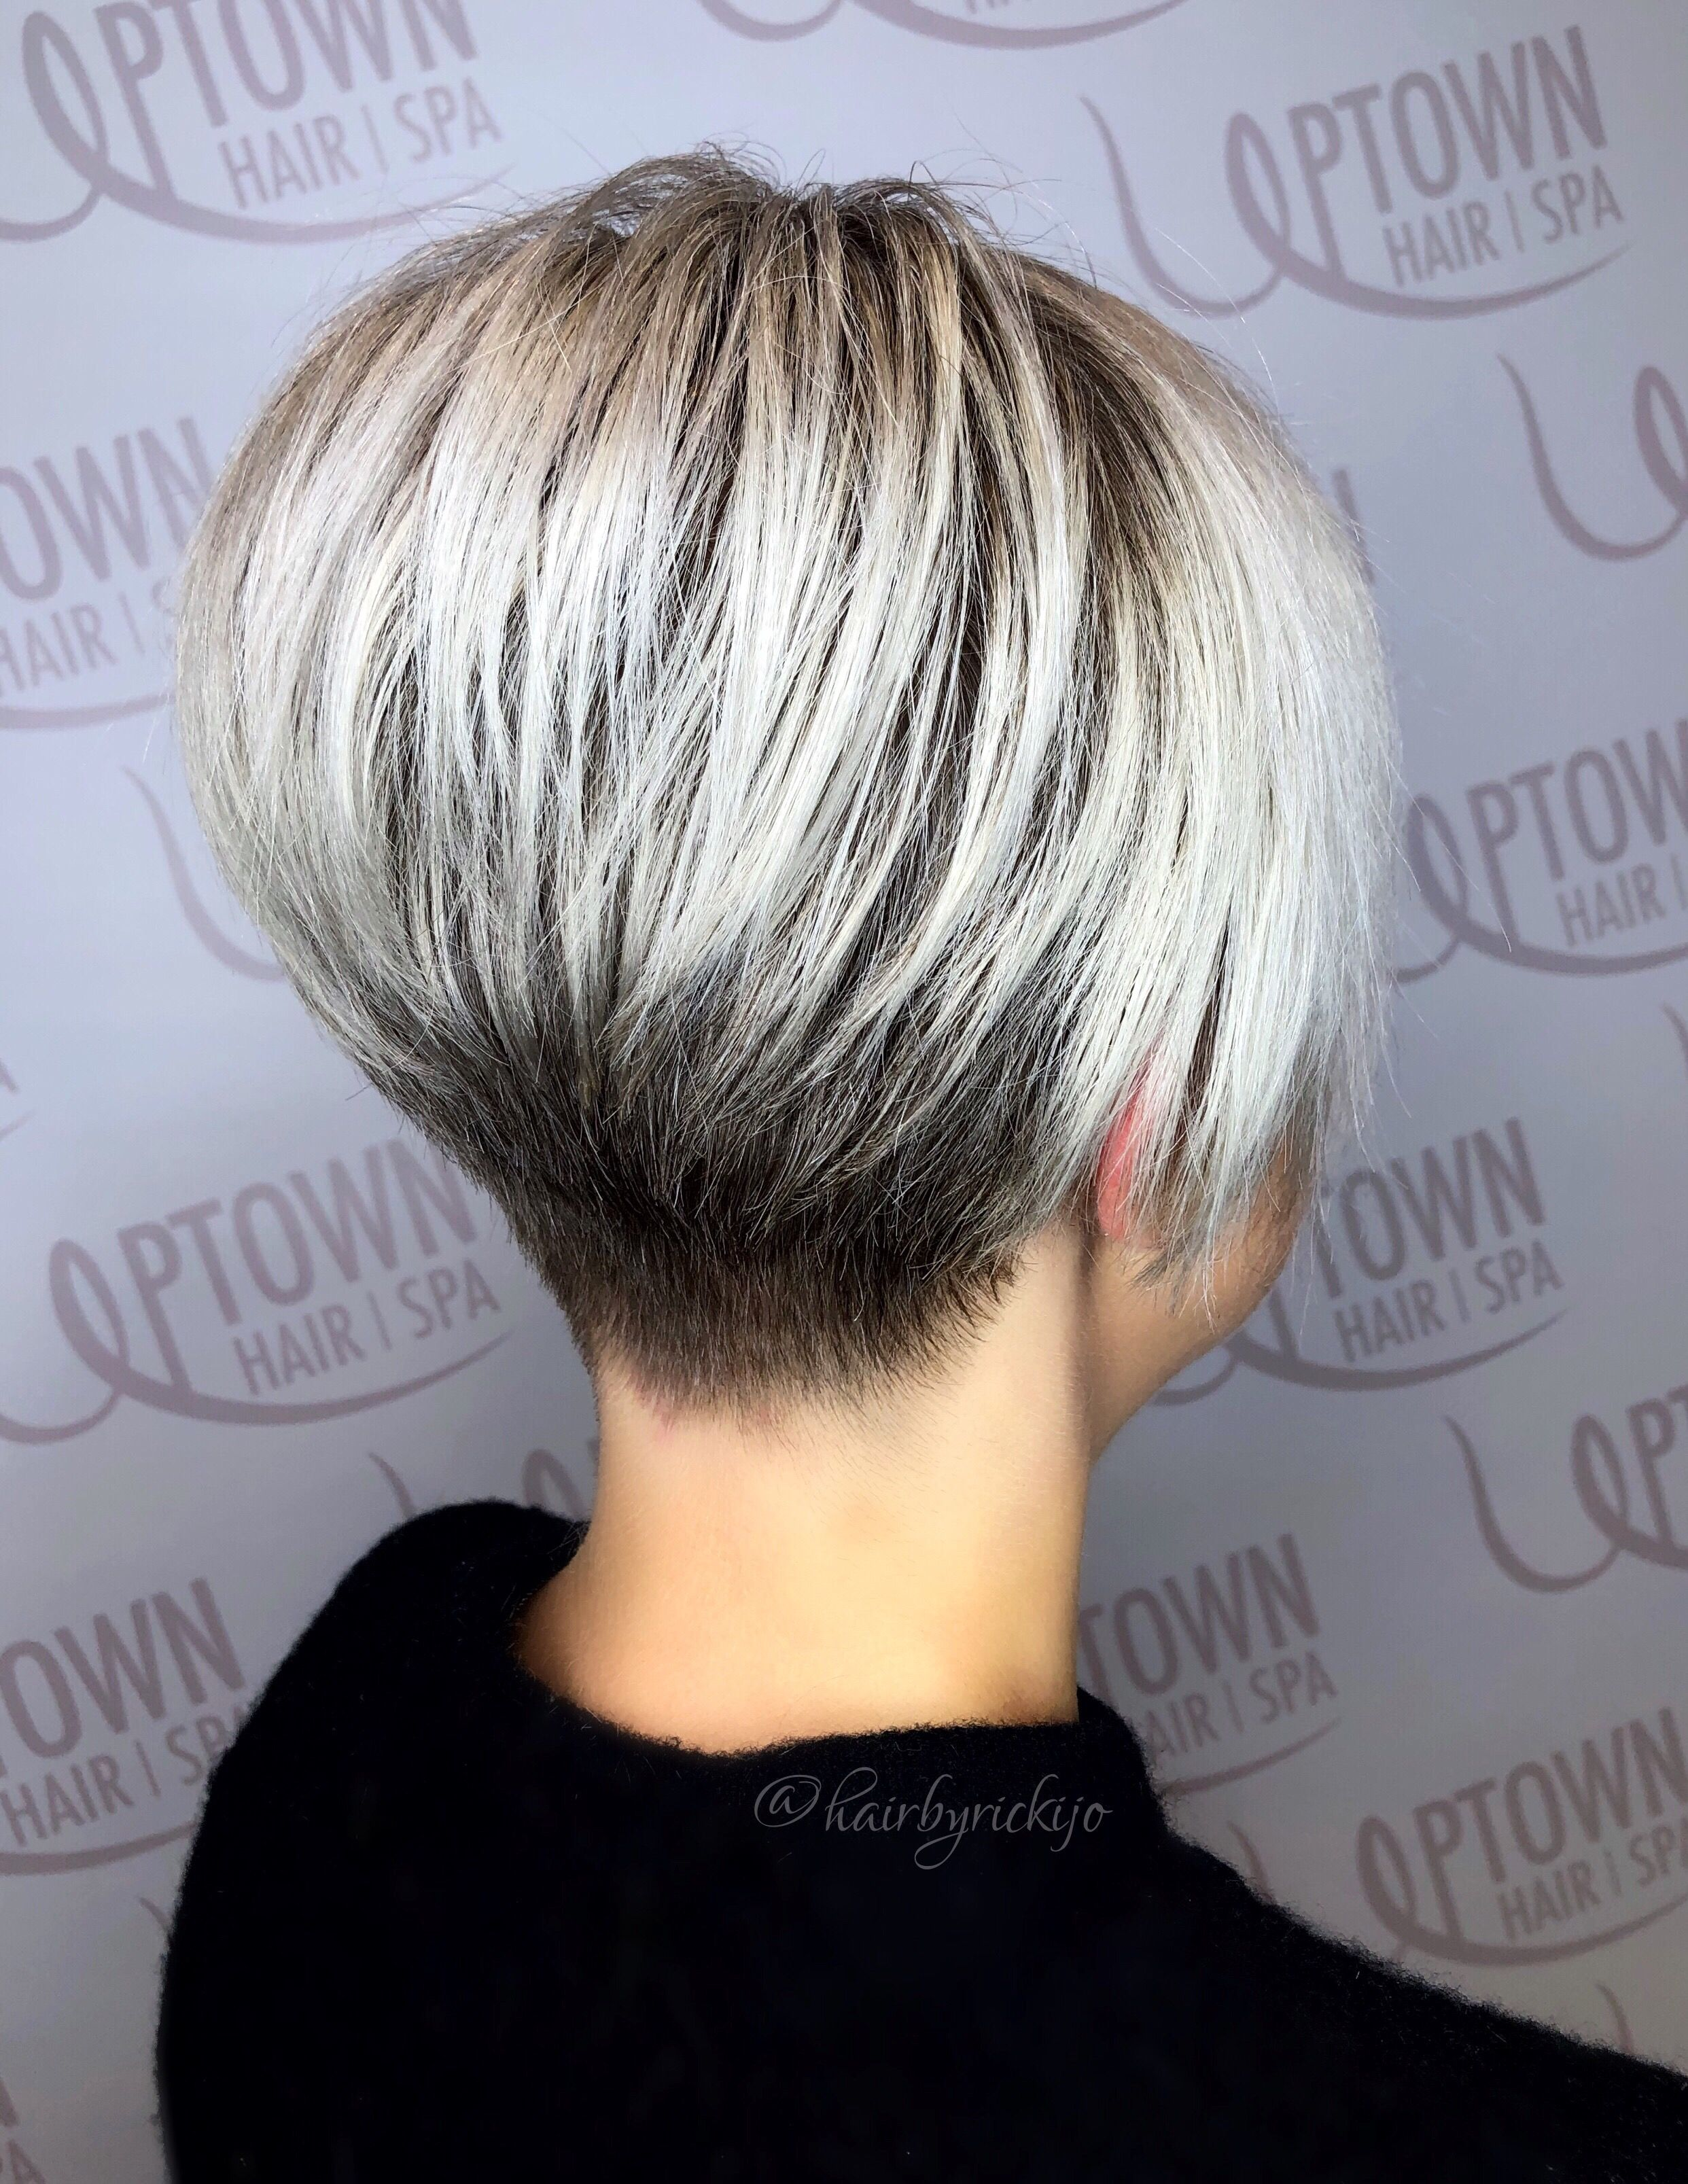 Platinum Pob Short Bob Pixie Haircut Short Hair Styles Short Wedge Haircut Wedge Haircut